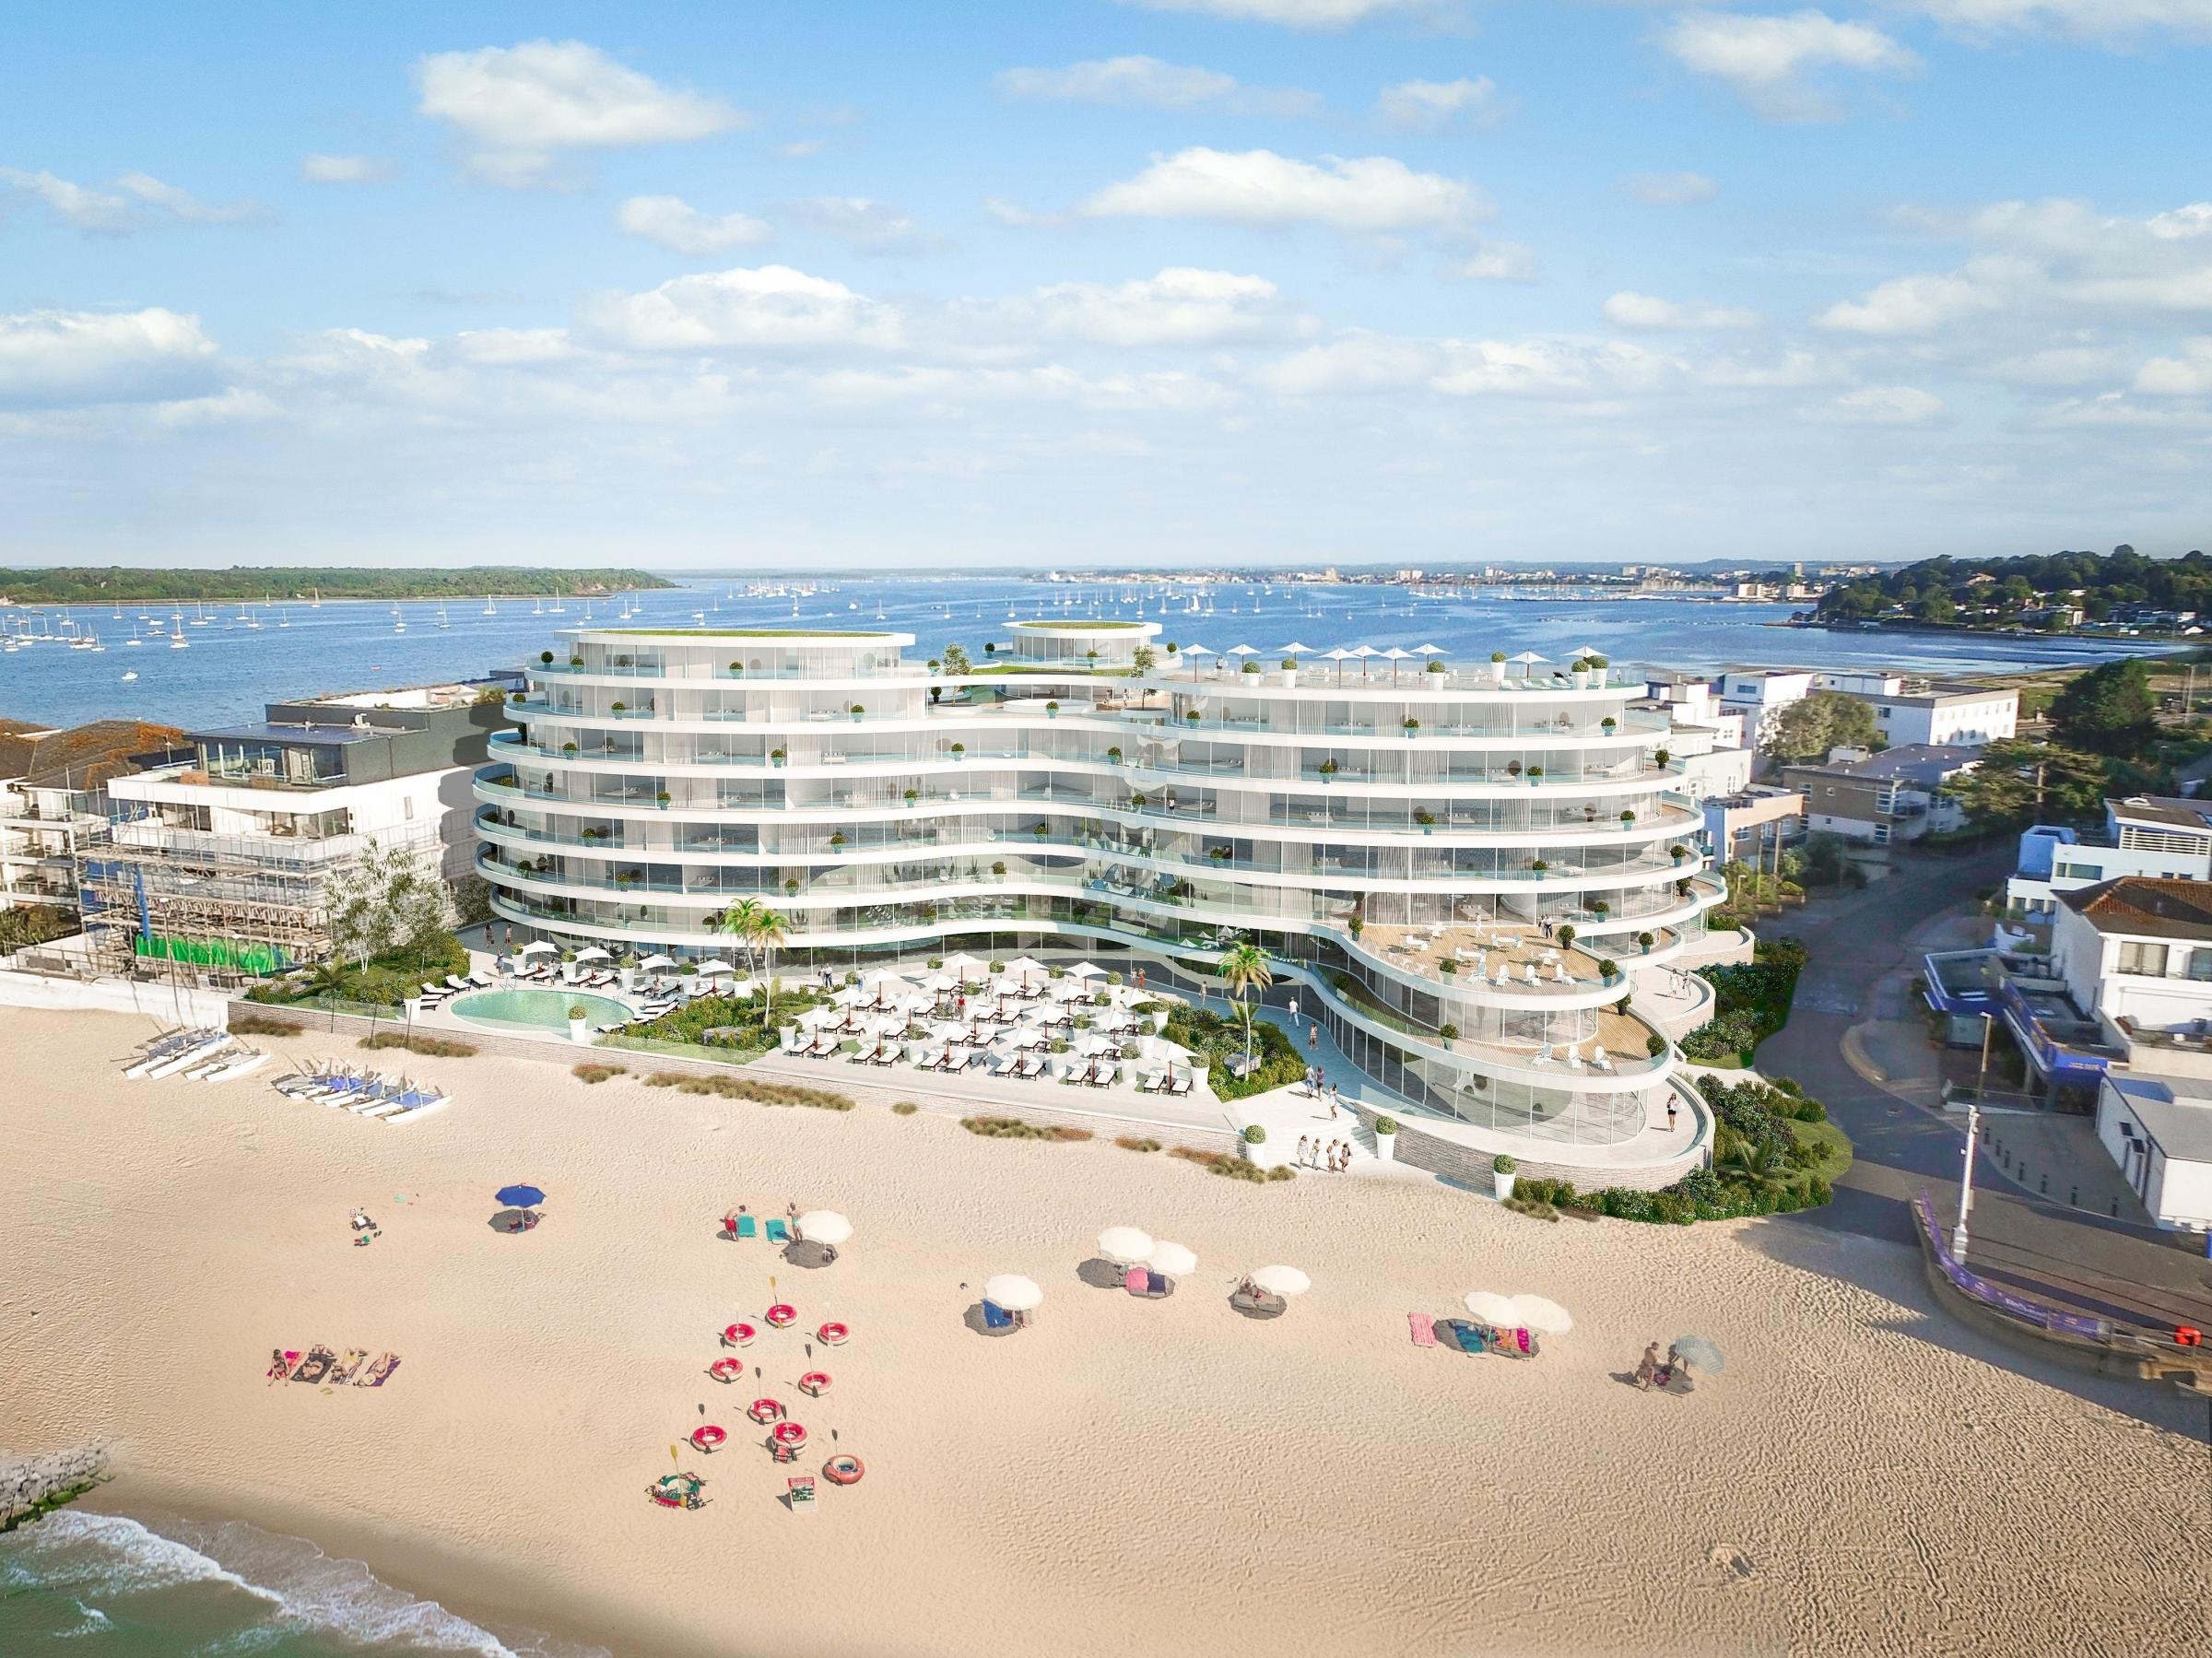 Bed And Breakfast Poole Harbour Richard Carr S 200m Plan For Landmark Tower And Hotels In